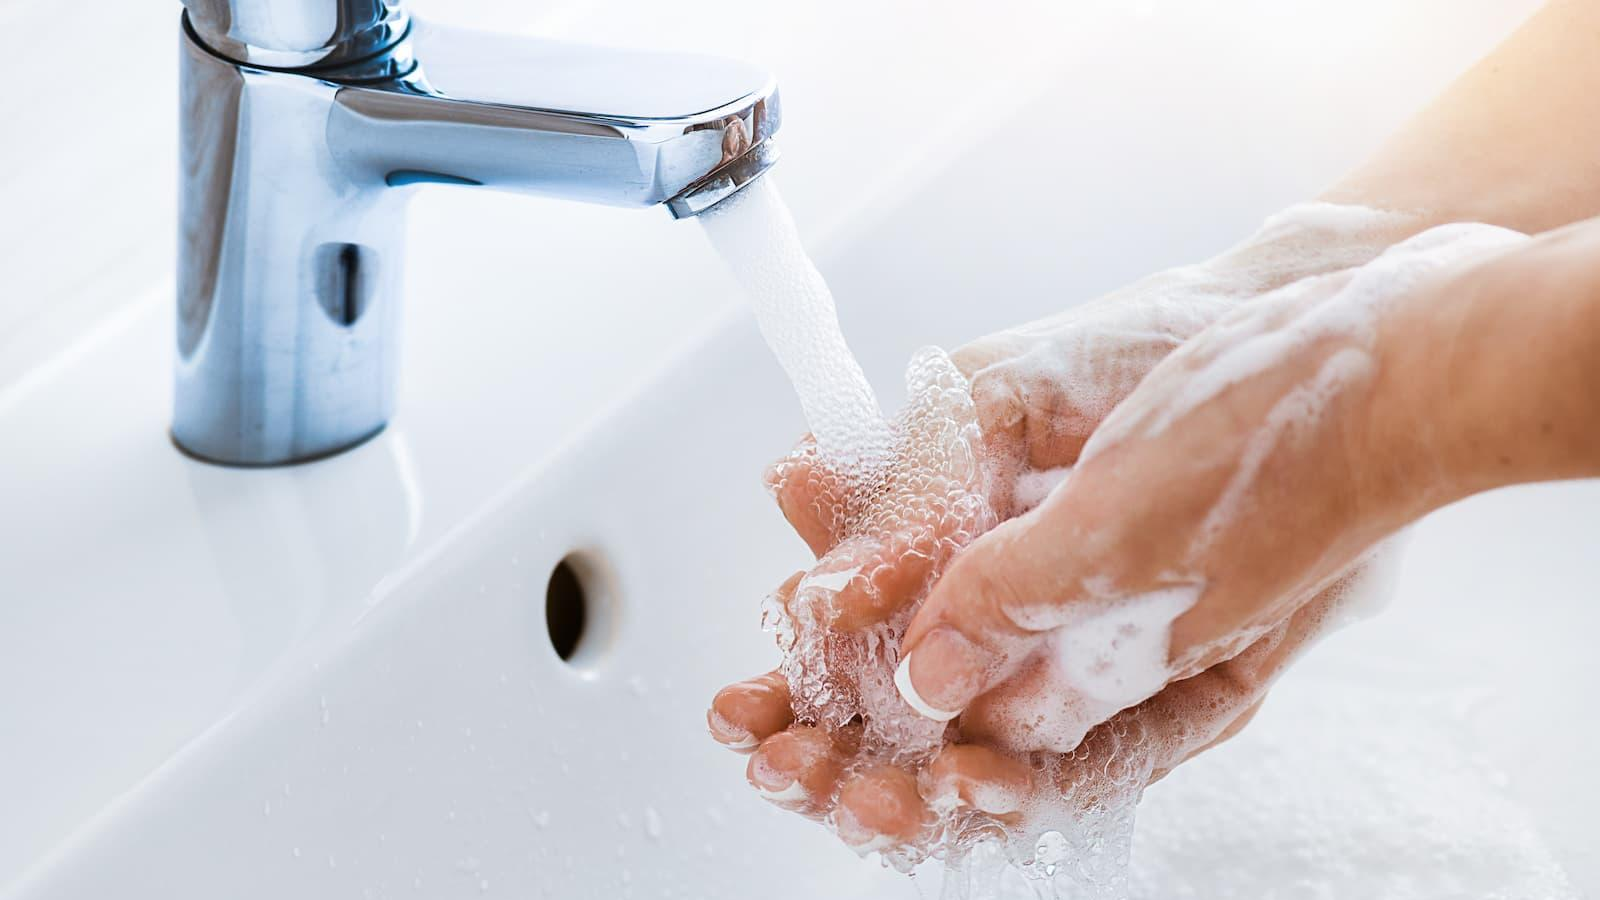 MoPH launches extensive campaign to mark World Hand Hygiene Day